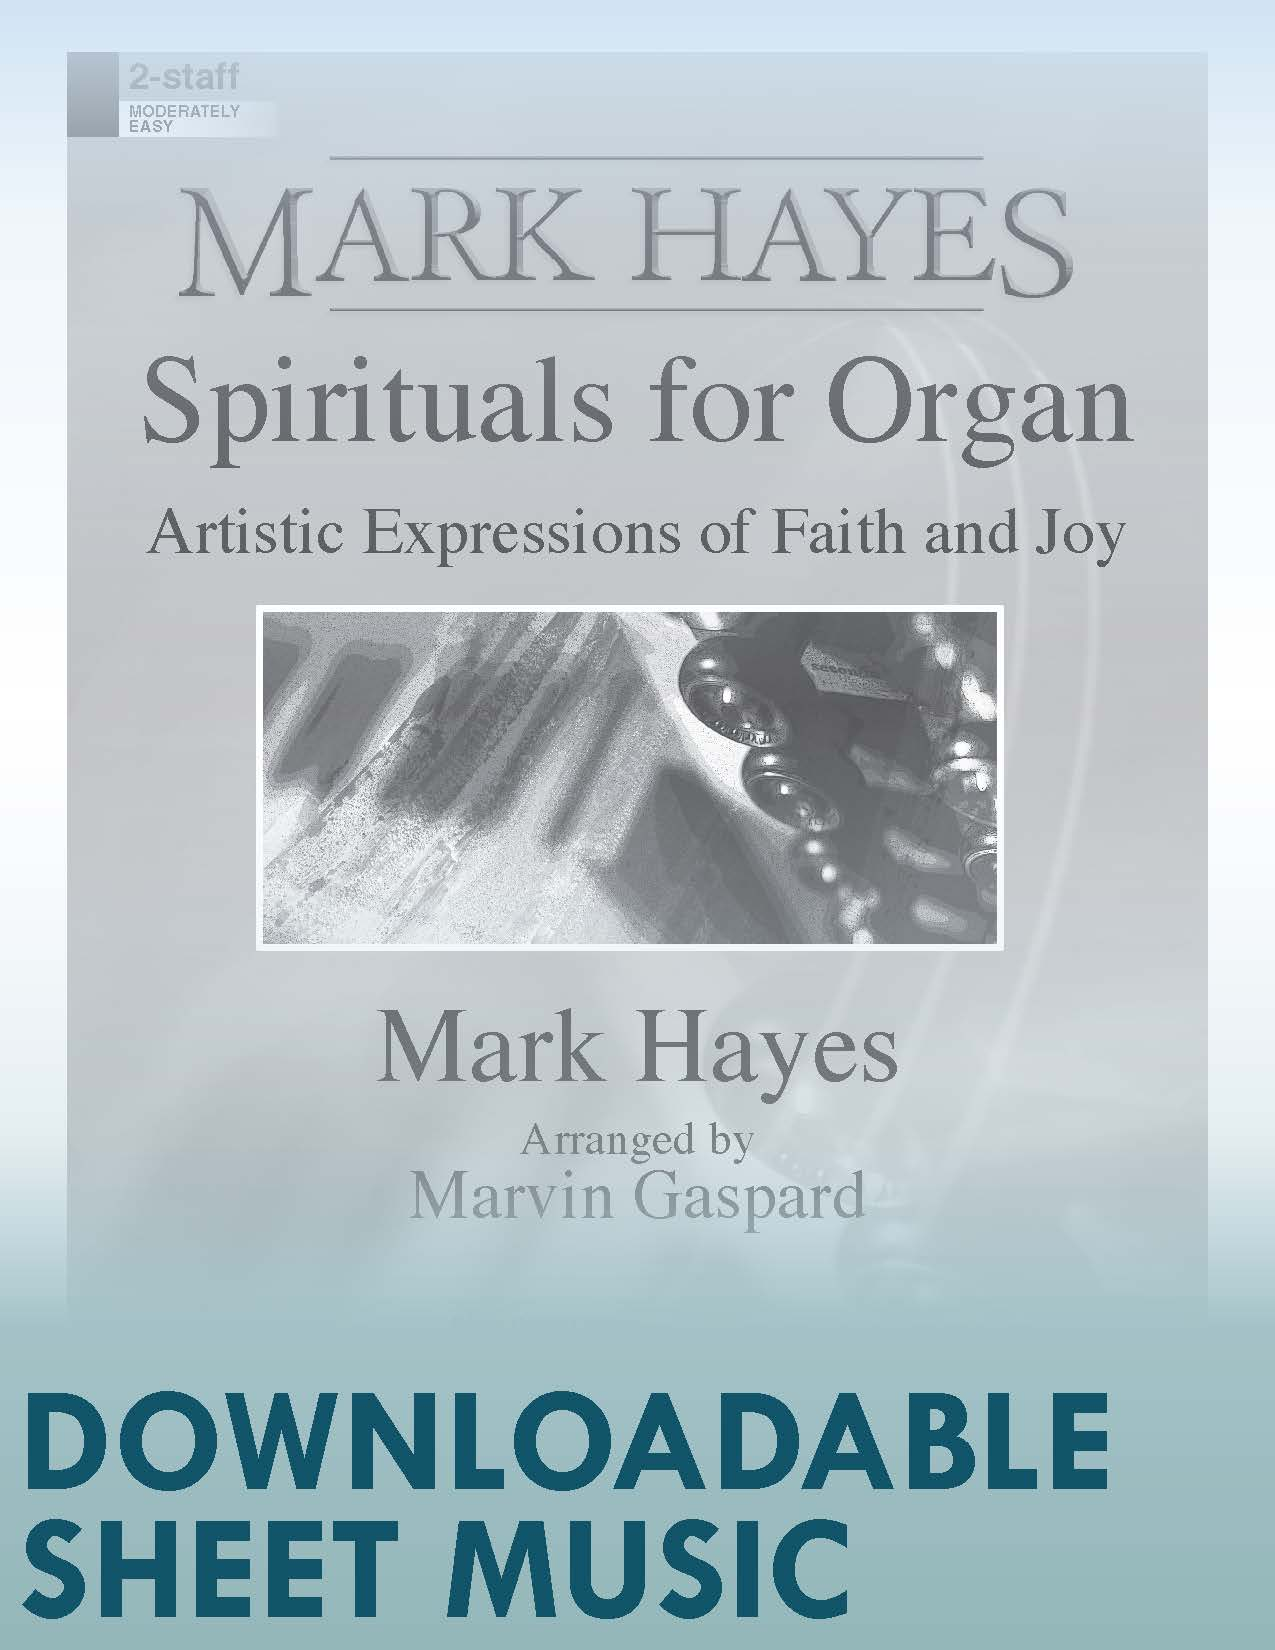 Mark Hayes: Spirituals for Organ (Digital Delivery)